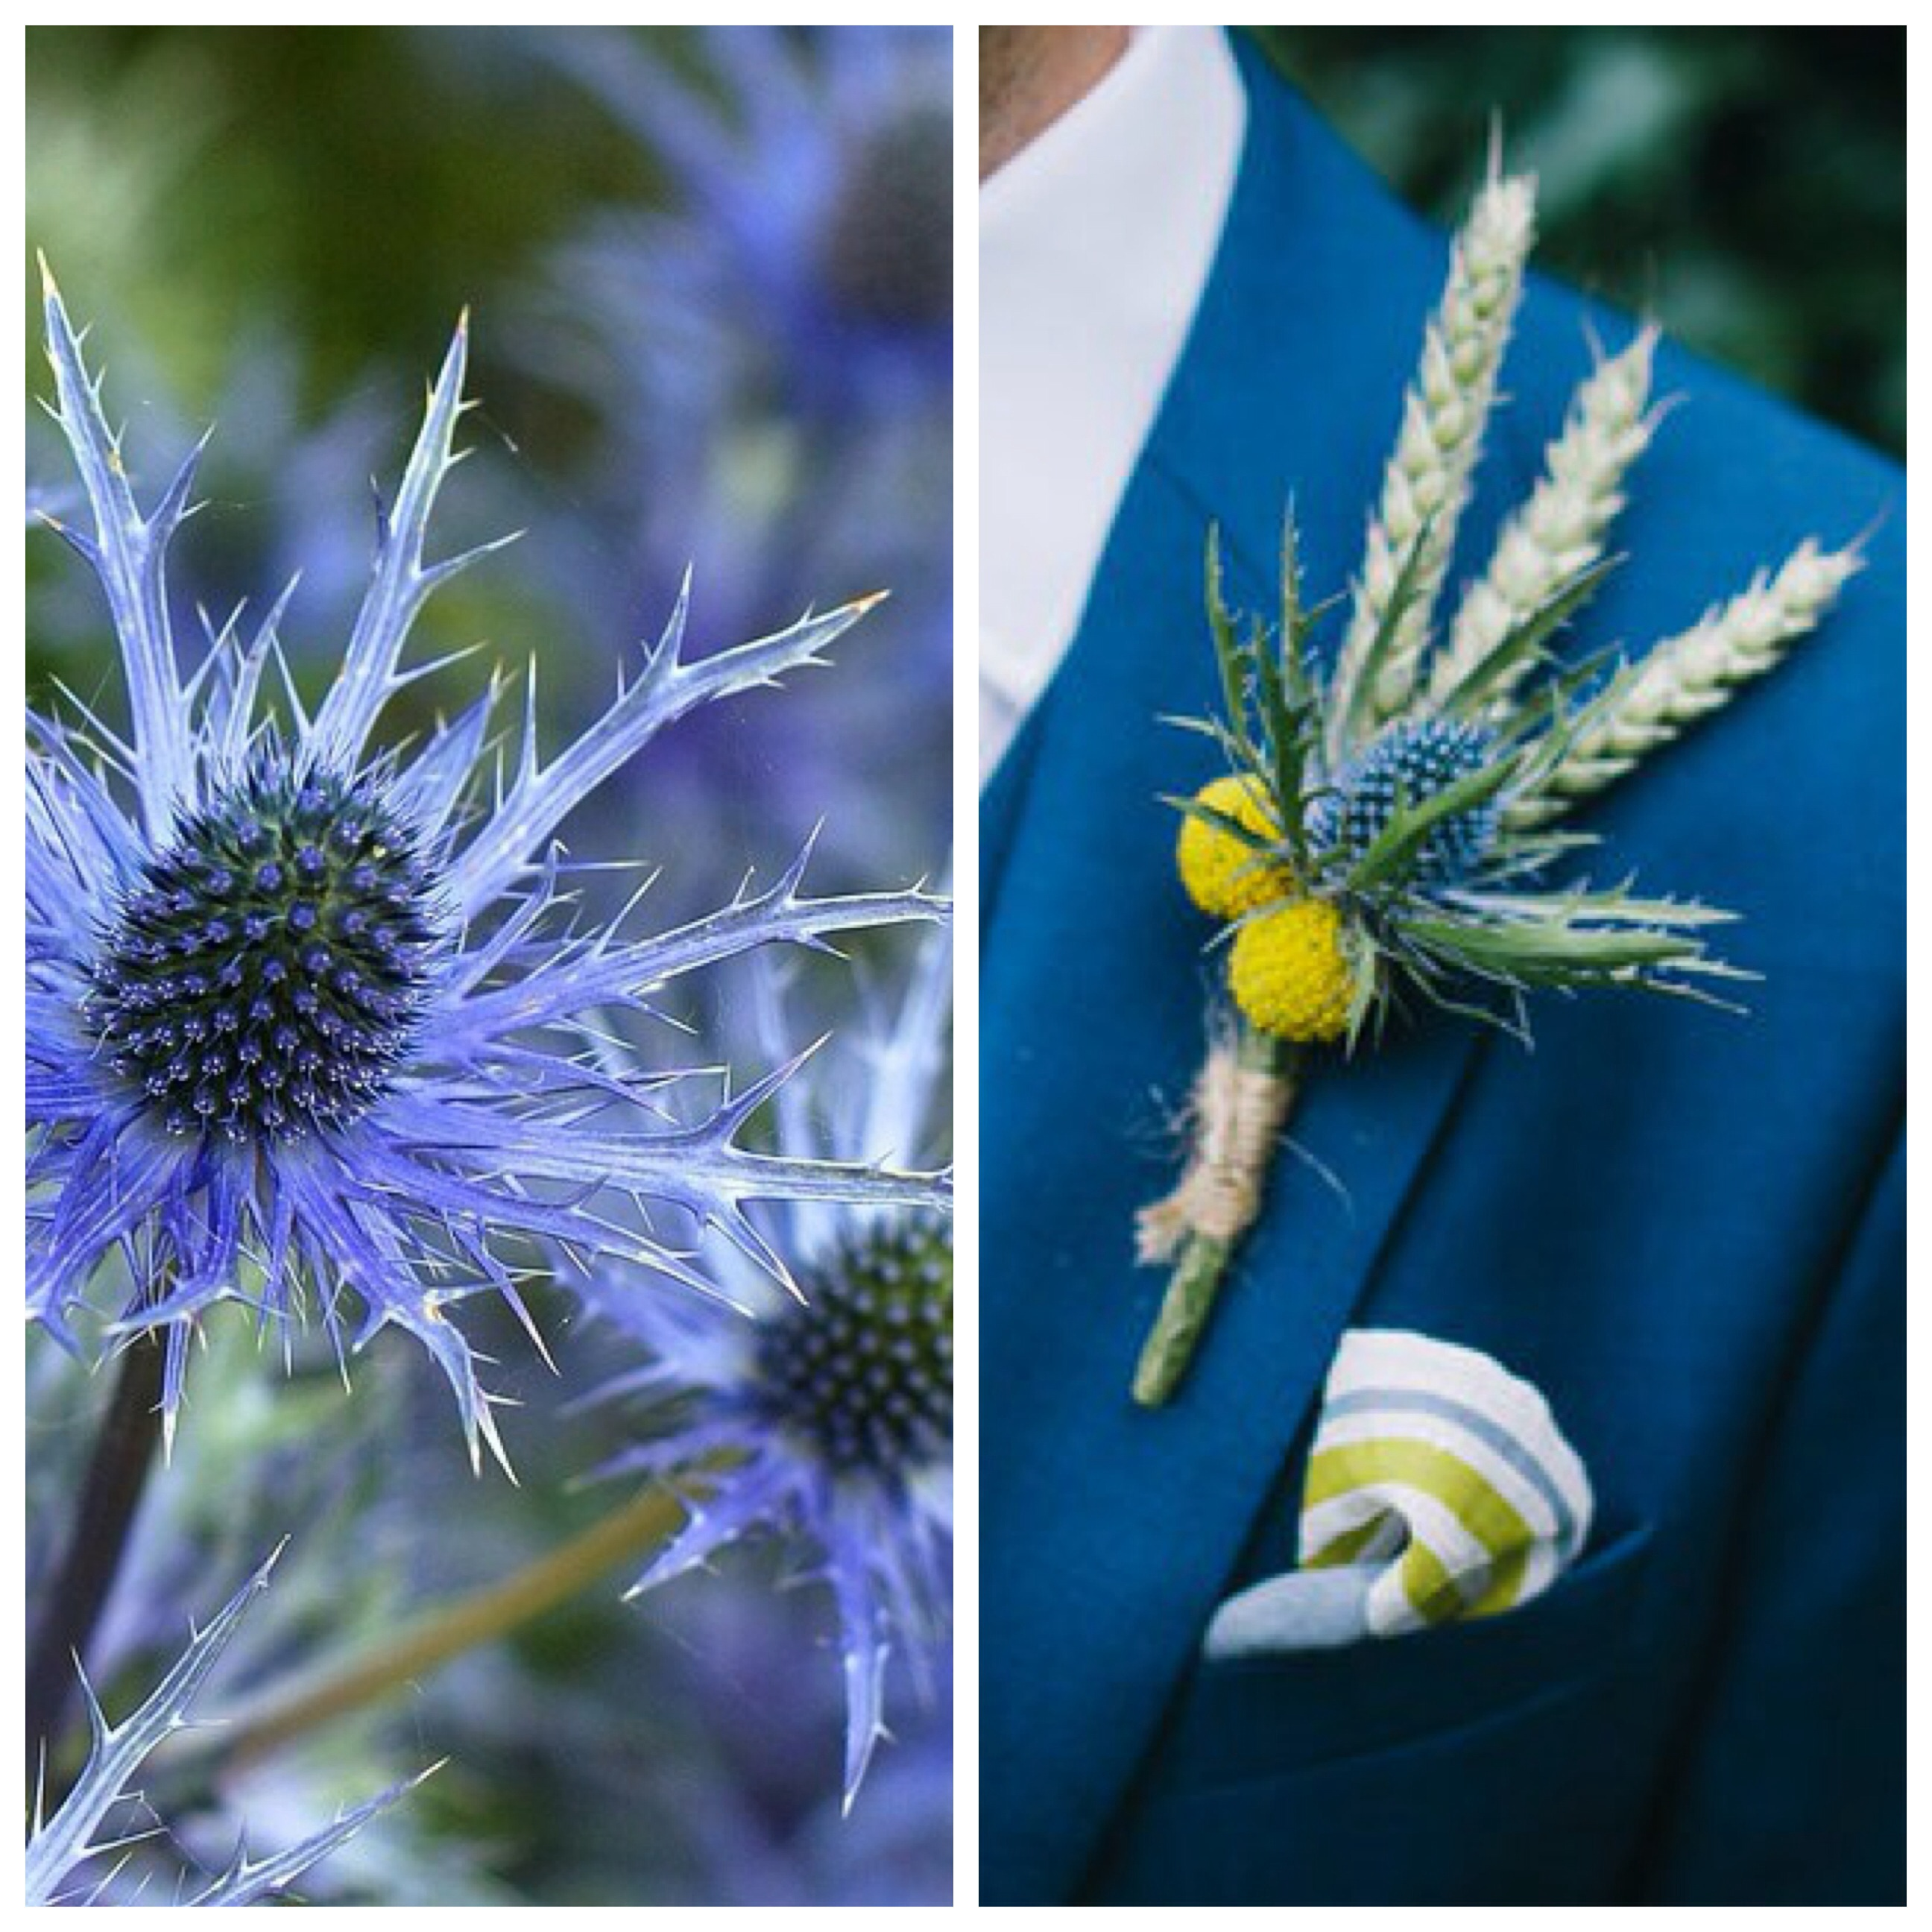 Wild Flowers For Wedding: 10 Wild Flower Options For A Country Wedding